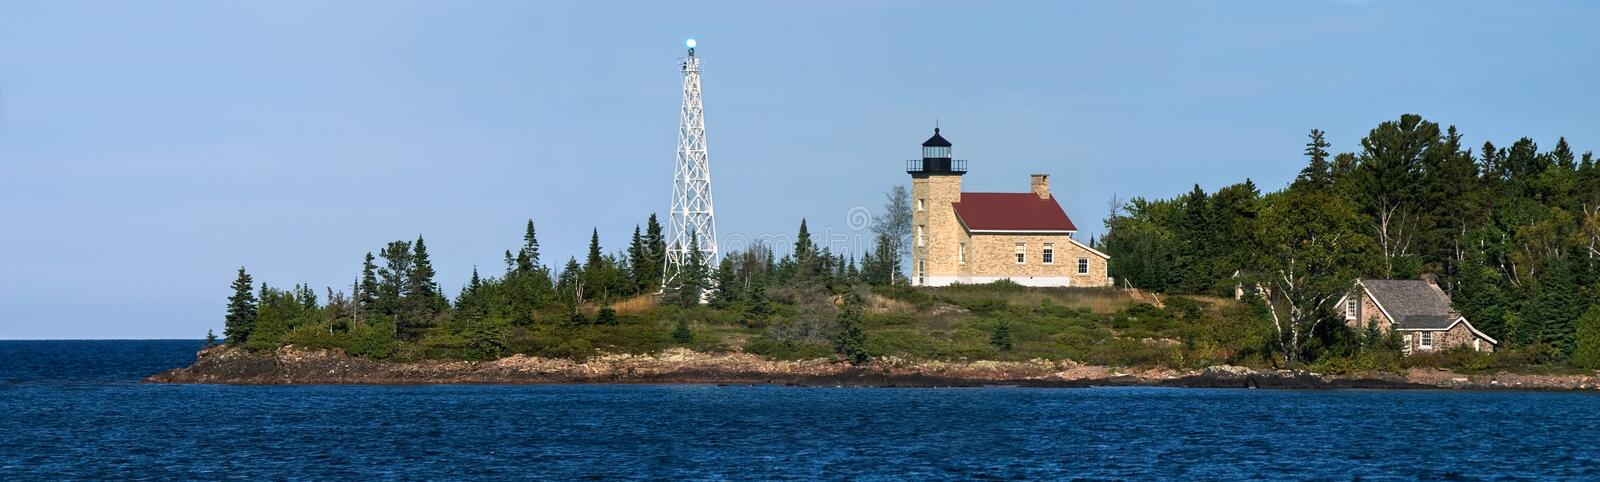 Copper Harbor Lighthouse. The Historic Copper Harbor Lighthouse On Lake Superior, Michigan's Upper Peninsula, Panoramic View royalty free stock photo